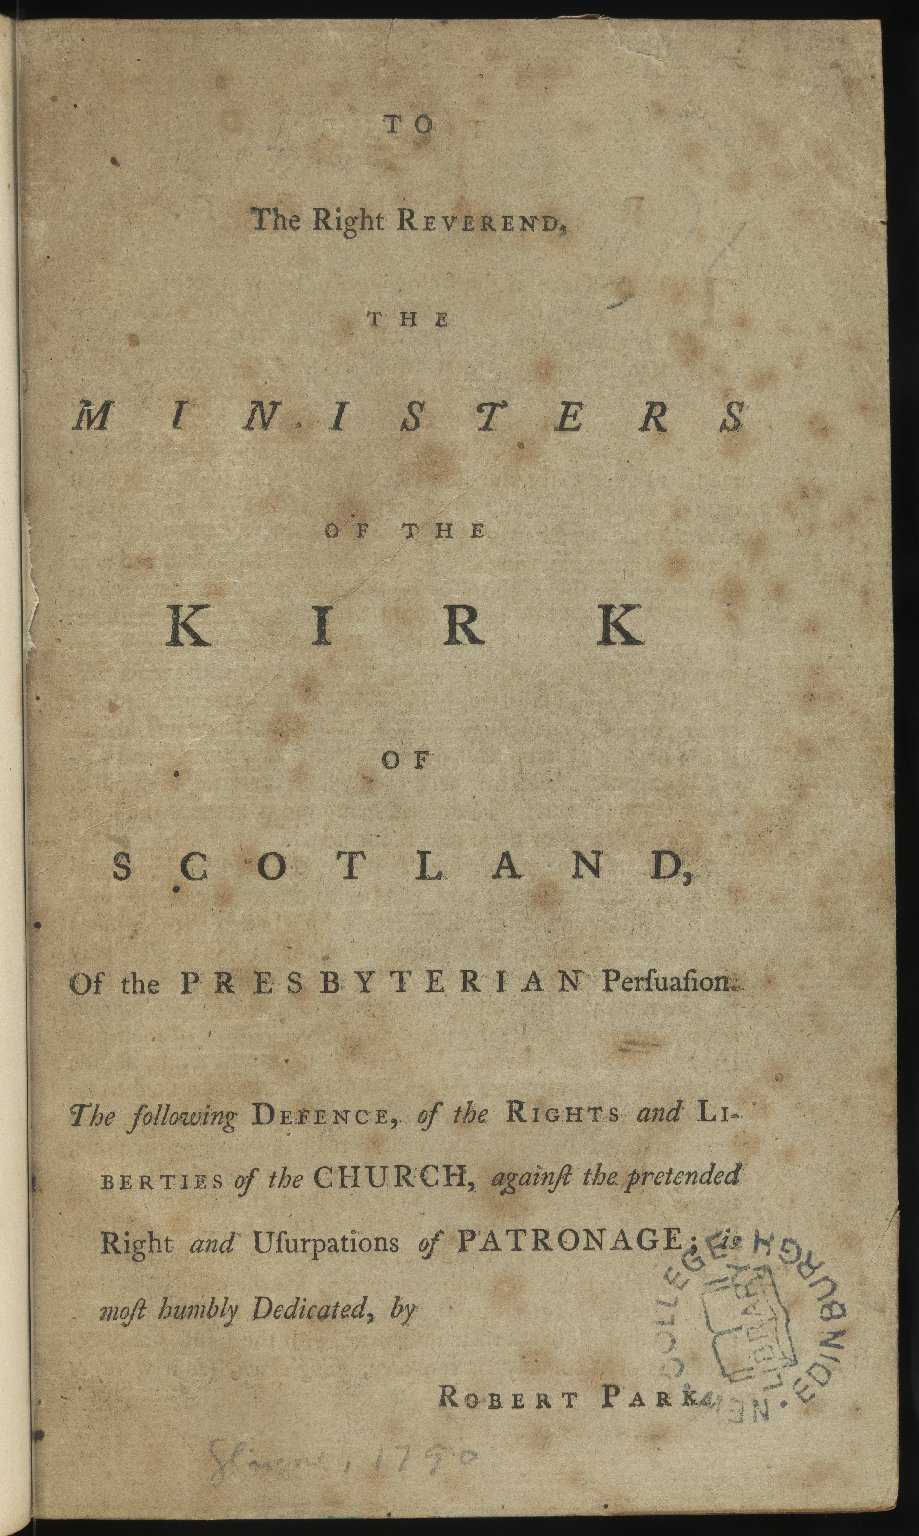 To the Right Reverend, the Ministers of the Kirk of Scotland, Pamphlet 1, title page